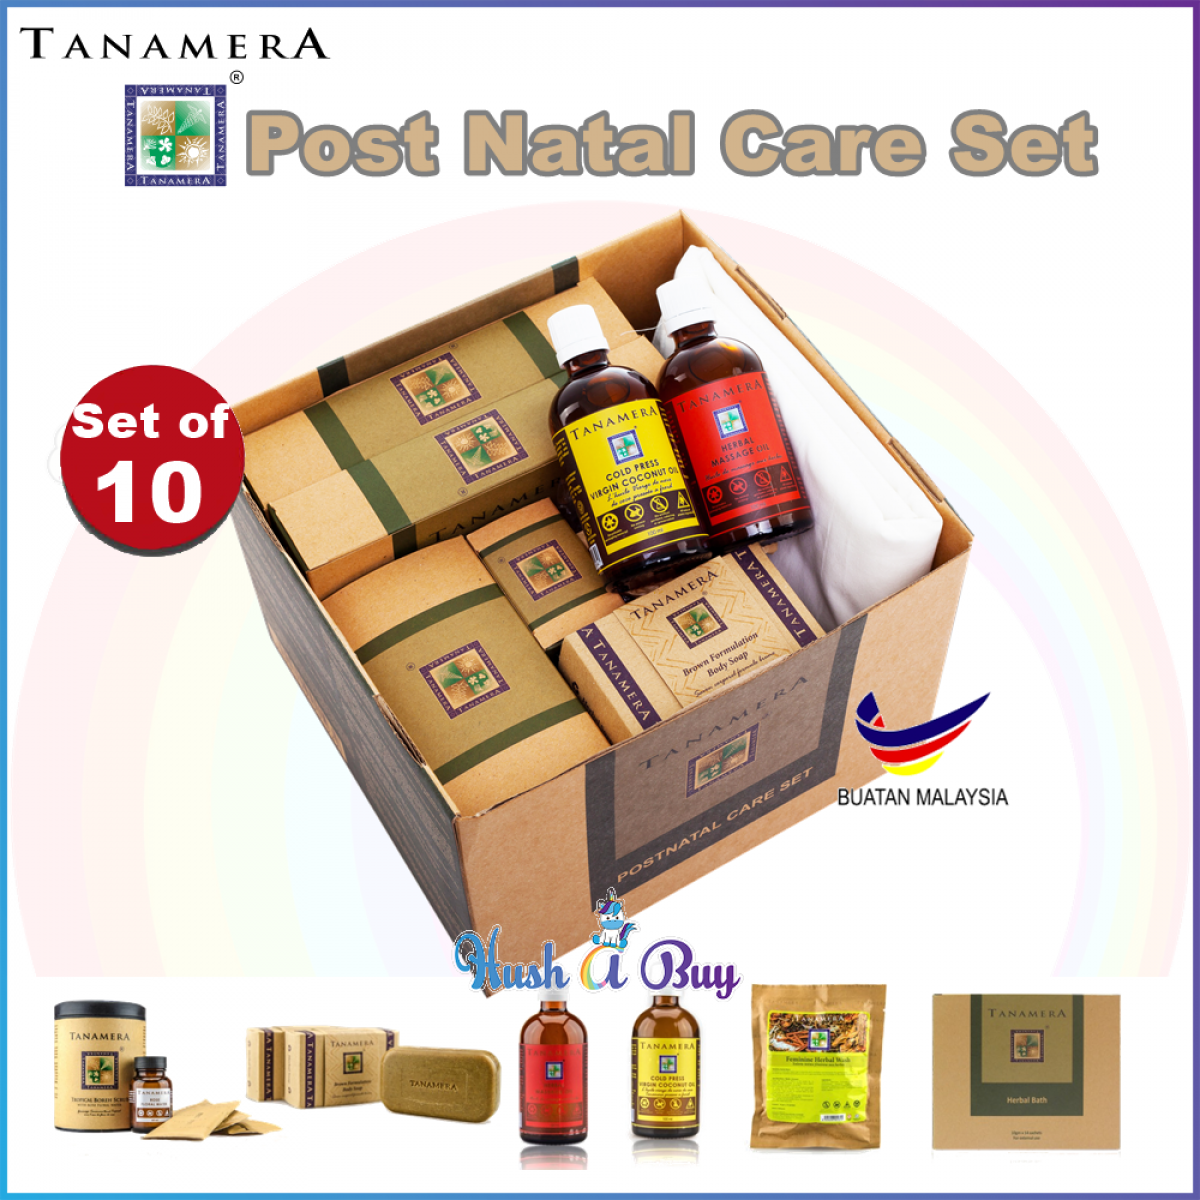 Tanamera Post Natal Care Set